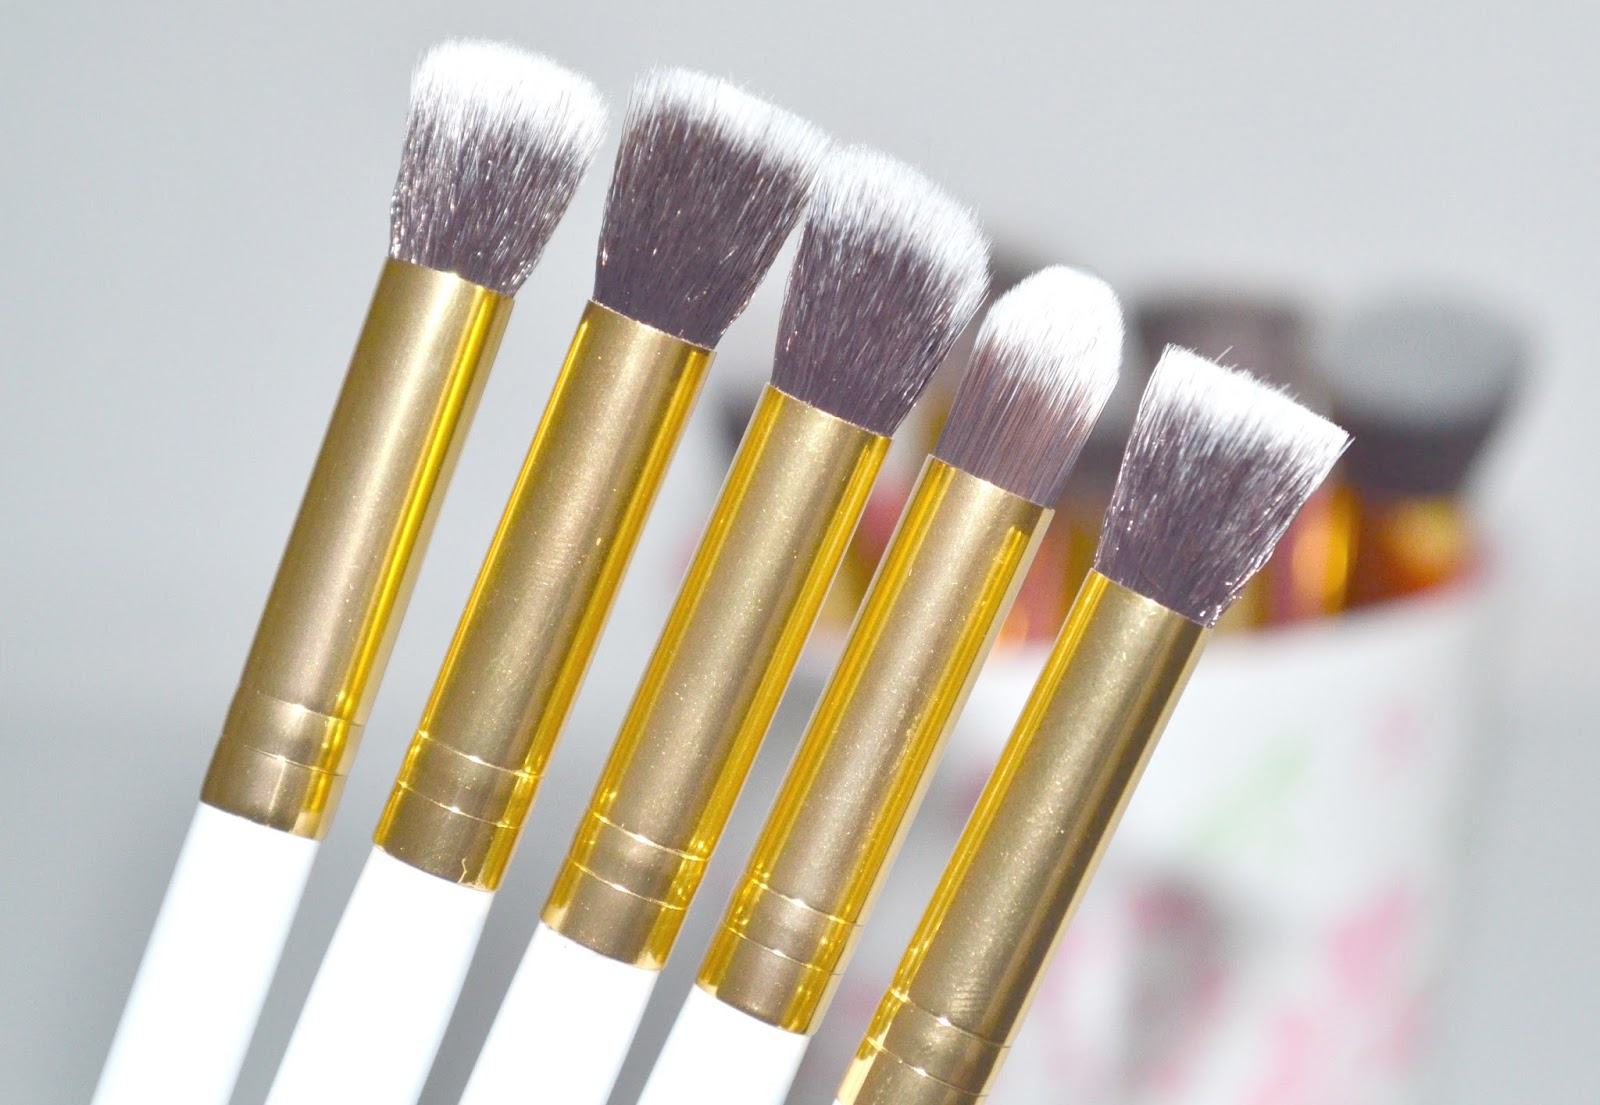 cheap makeup brushes, budget makeup brushes, inexpensive makeup brushes, makeup brushes review, quality makeup brushes, real techniques makeup brushes dupes